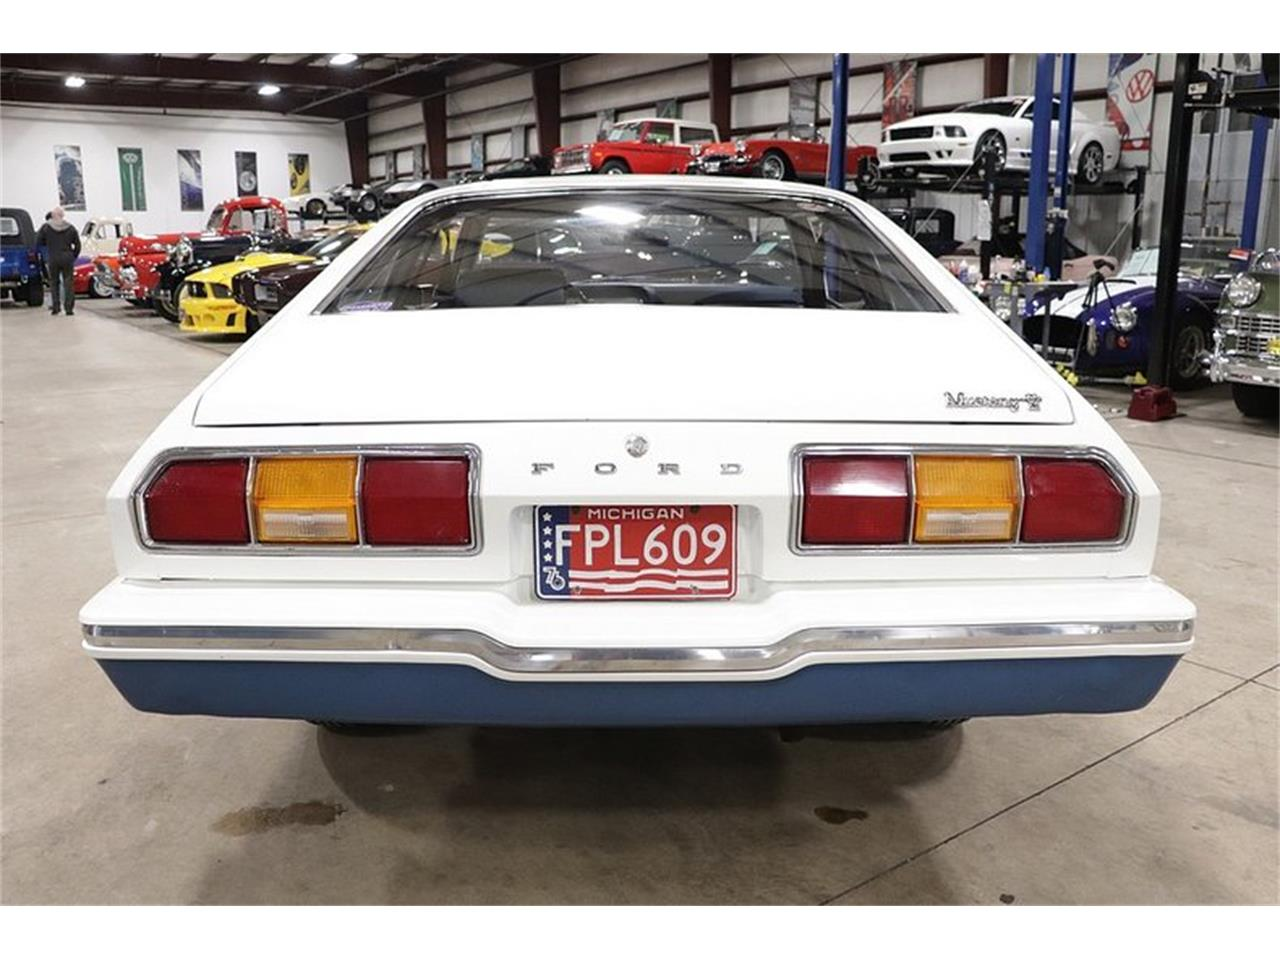 1976 ford mustang ii cobra for sale classiccars cc 1168228 Hertz Mustang large picture of 76 mustang ii cobra p1es